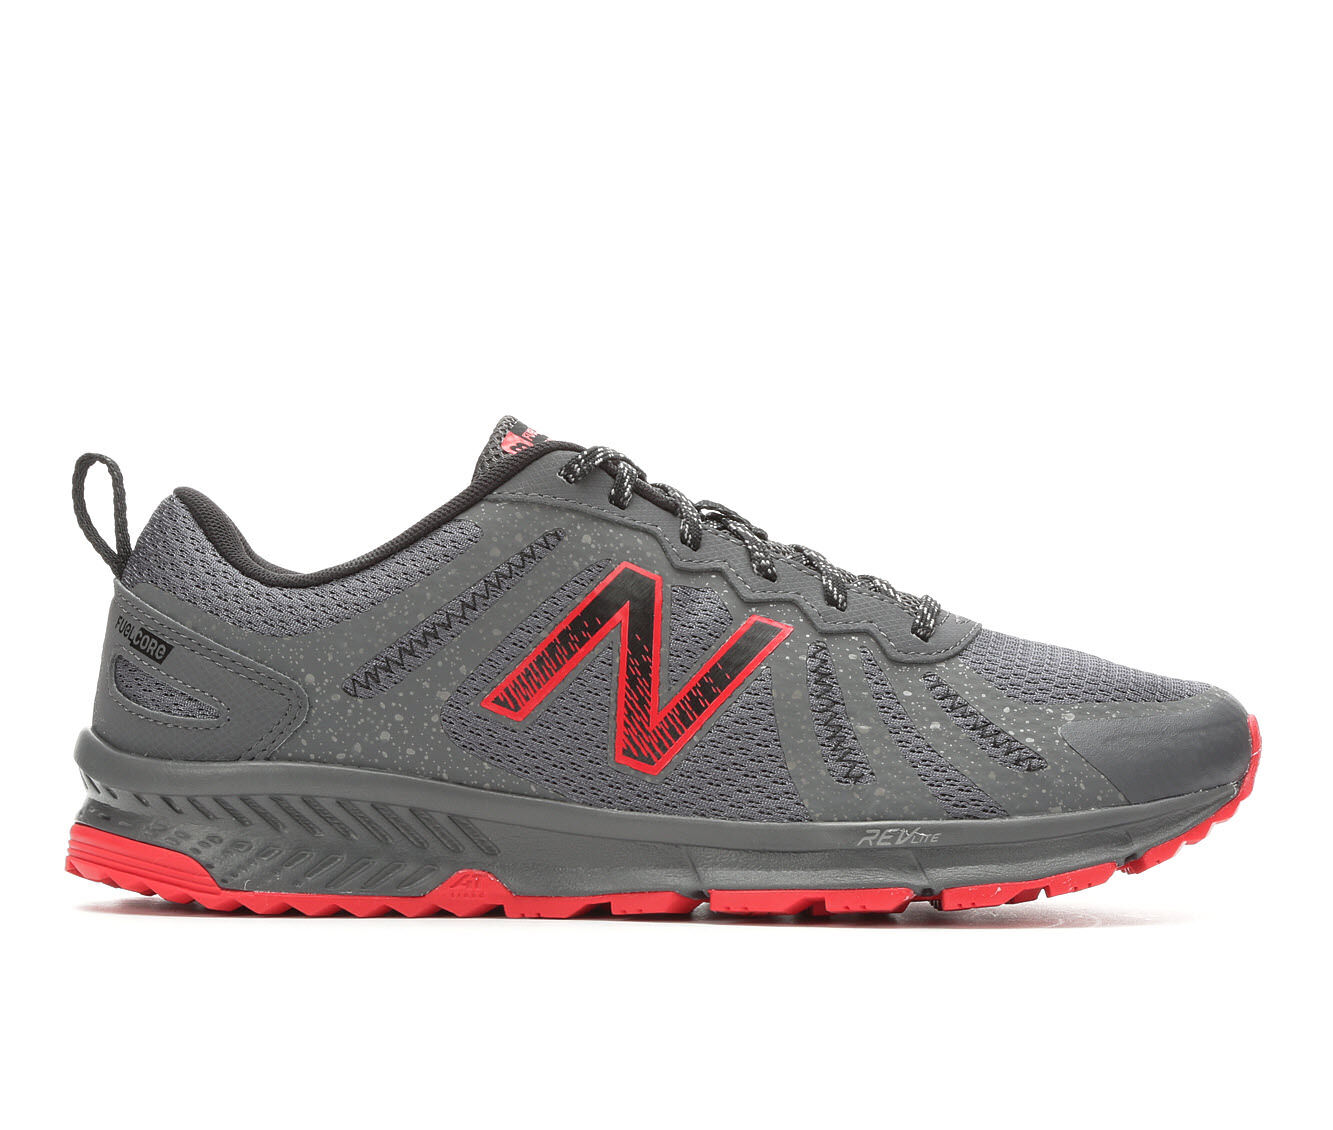 buy special Men's New Balance MT590 Trail Running Shoes Drk Gry/Blk/Red